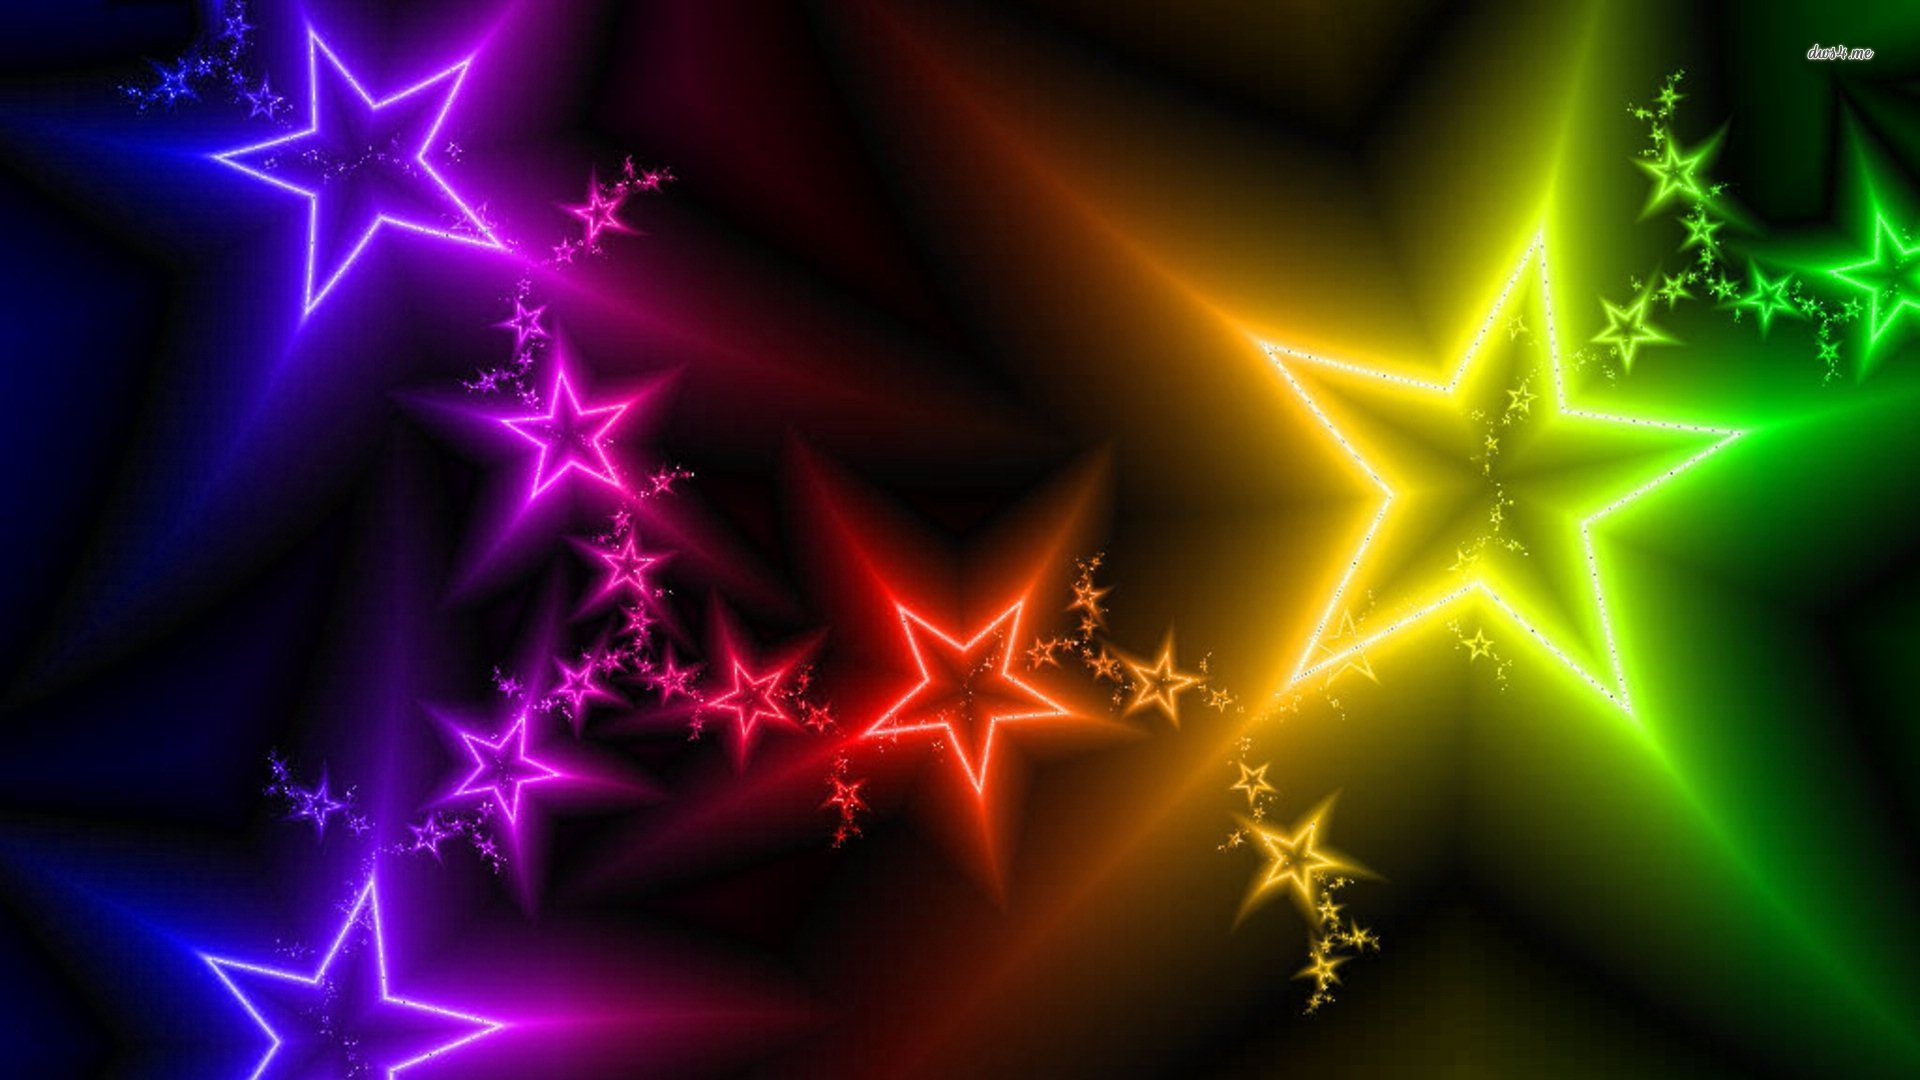 colorfulstarswallpaperabstractwallpapers5150colorful